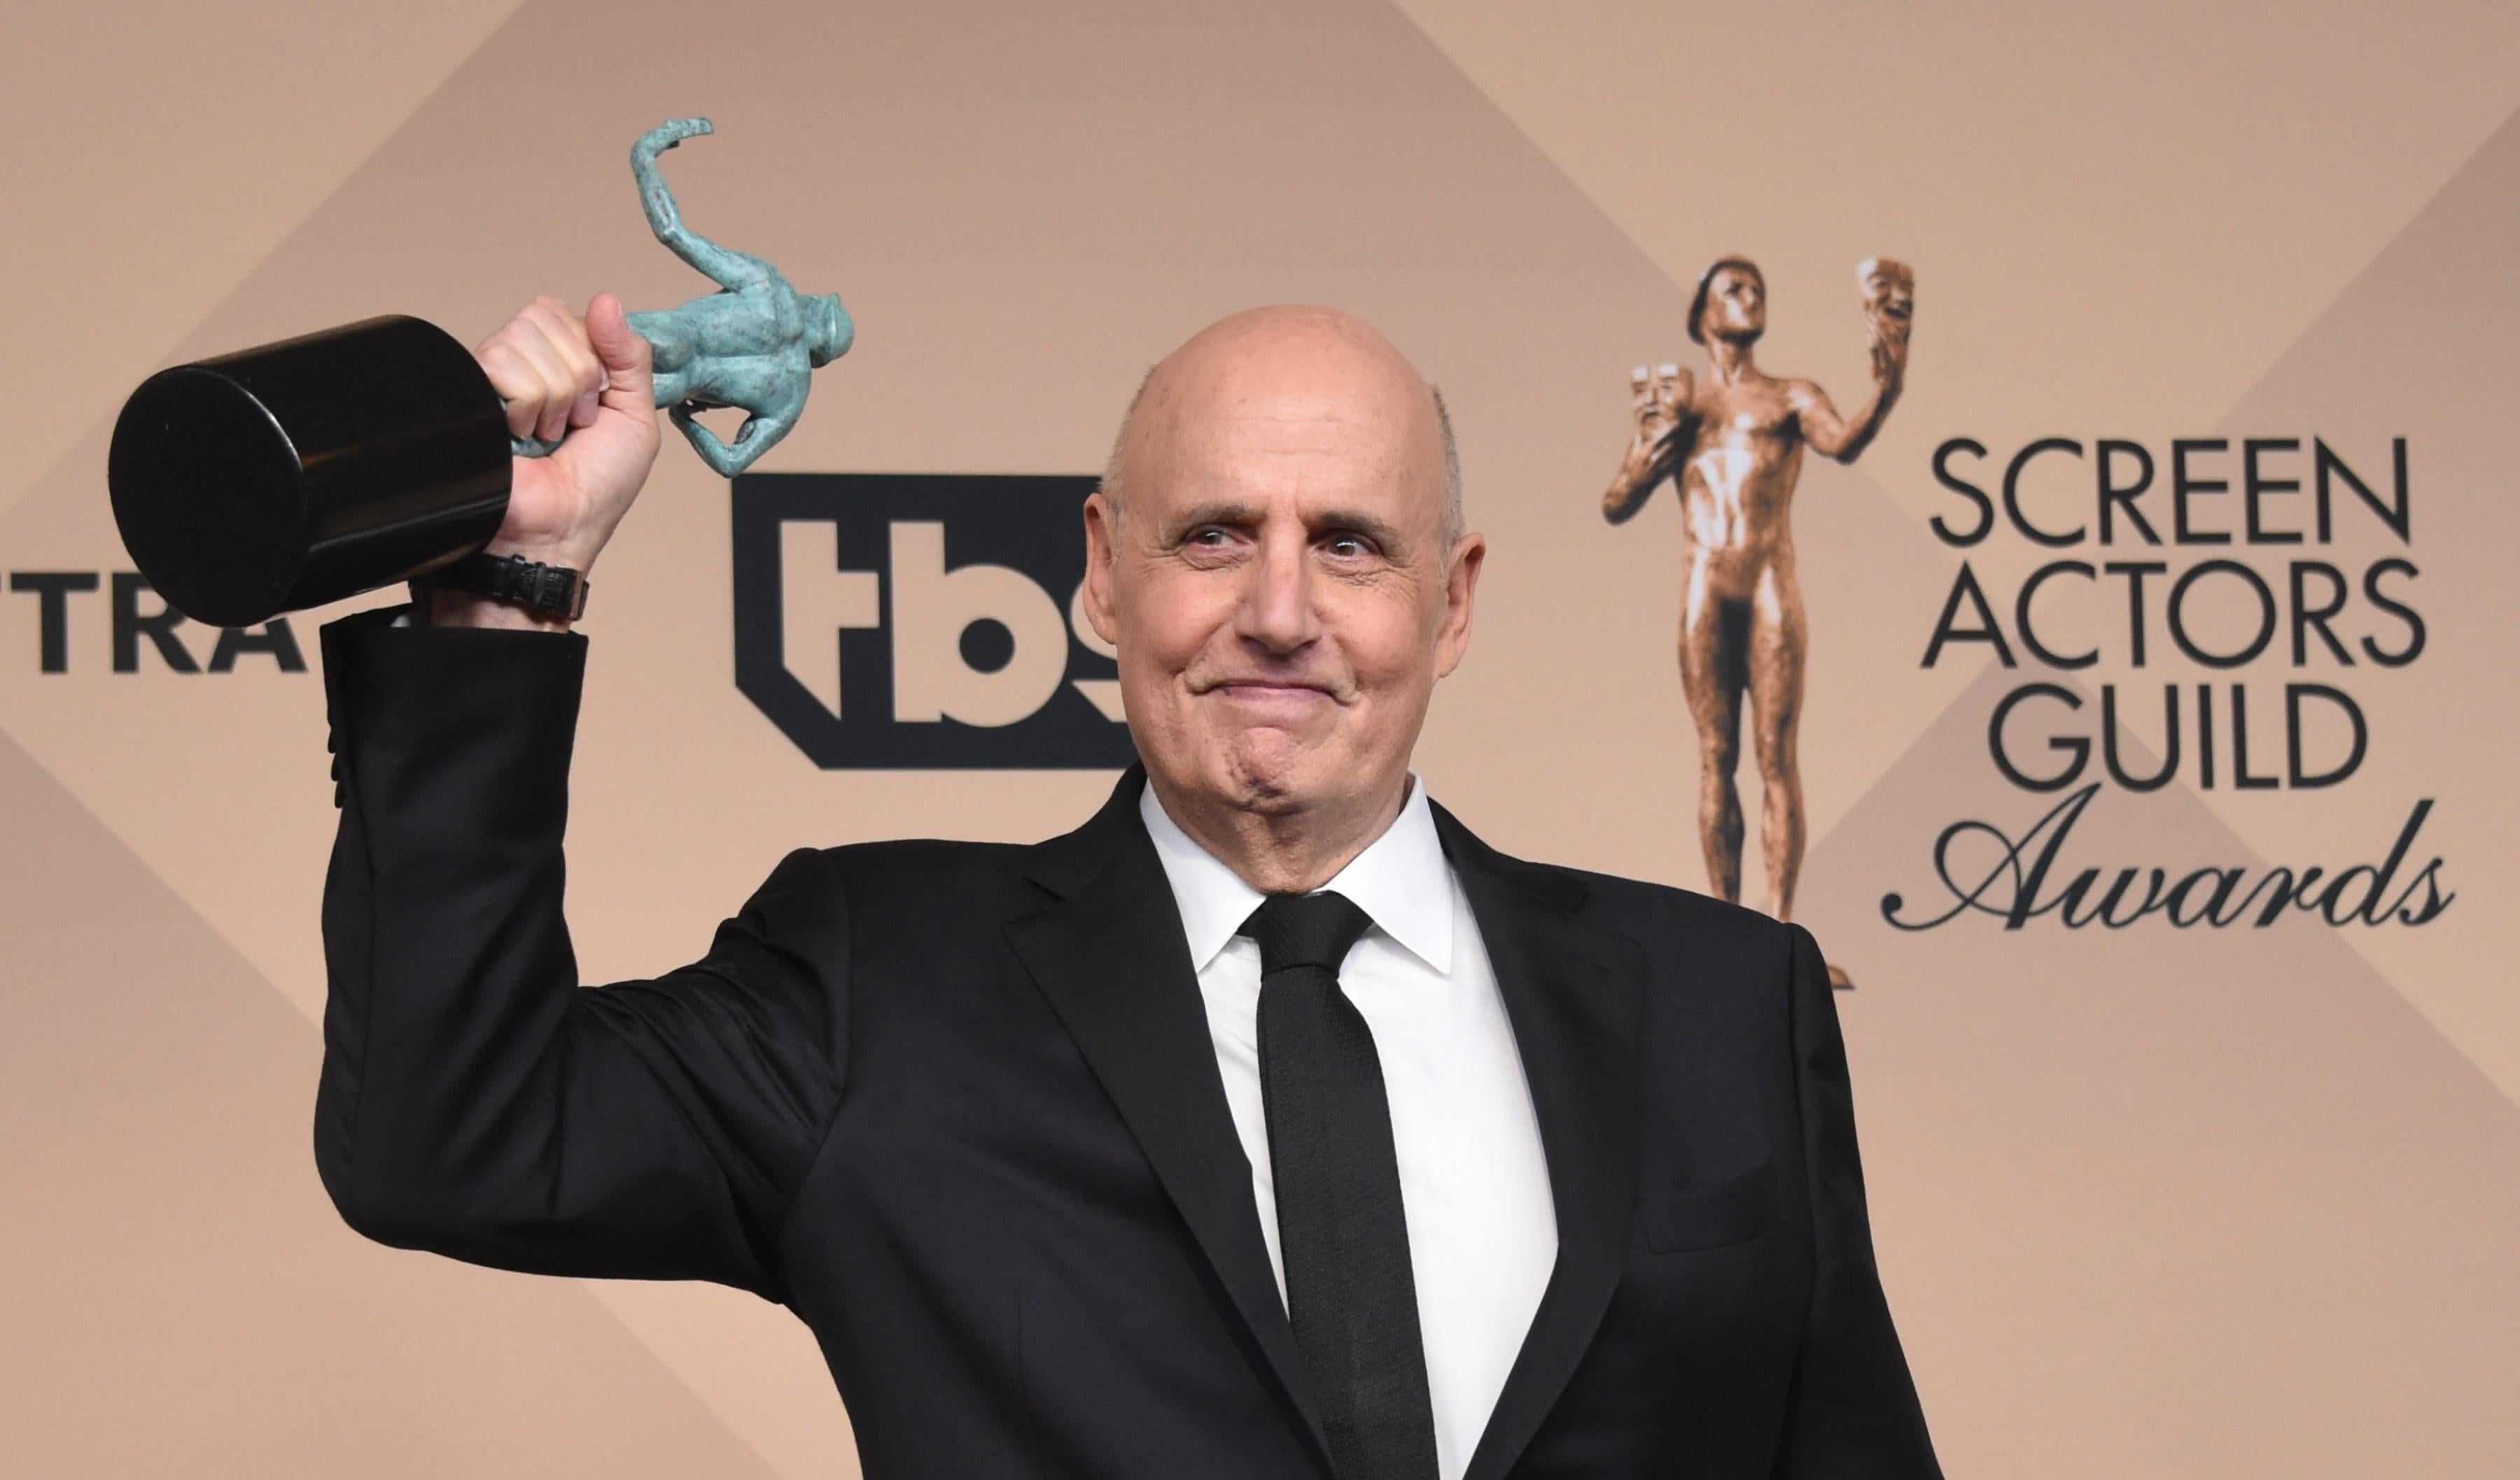 JeffreyTambor,  winning Actor for Outstanding Performance by a Male Actor in a Comedy Series for his performance as Maura Pfefferman on Amazons Transparent,  poses in the press room at the 22nd Annual Screen Actors Guild Awards at The Shrine Auditorium on January 30, 2016 in Los Angeles, California. / AFP / FREDERIC J. BROWN        (Photo credit should read FREDERIC J. BROWN/AFP/Getty Images)